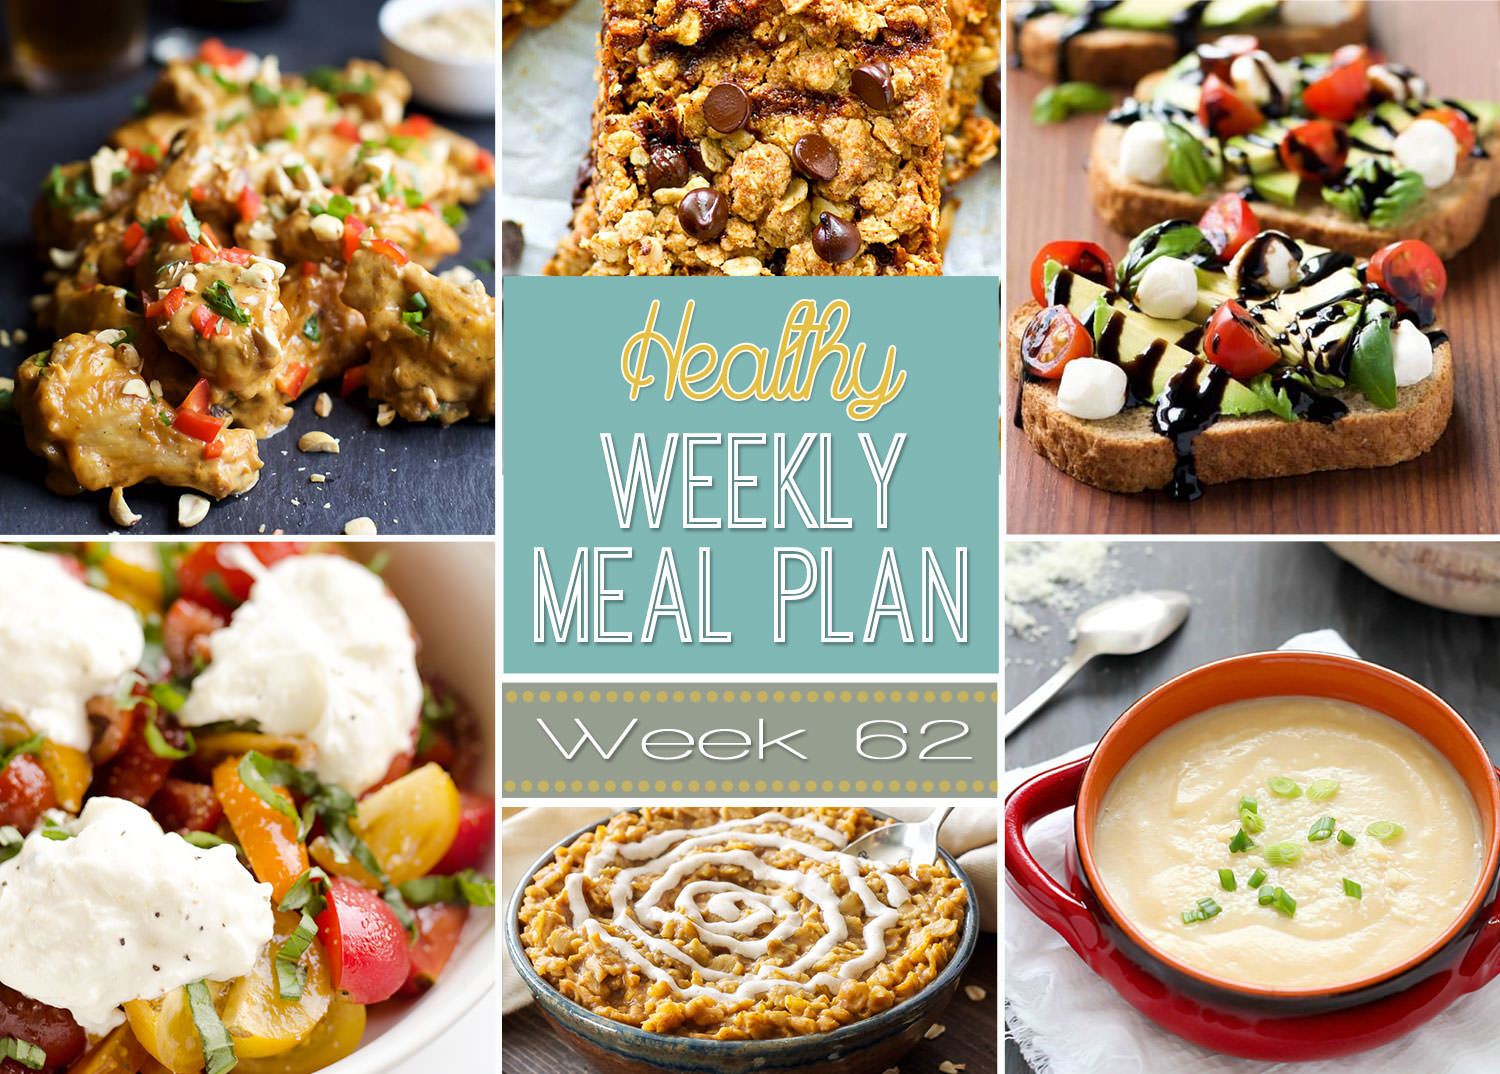 This weeks healthy meal plan is filled with comforting foods like creamy cauliflower soup and skinny spaghetti squash chicken parmesan!